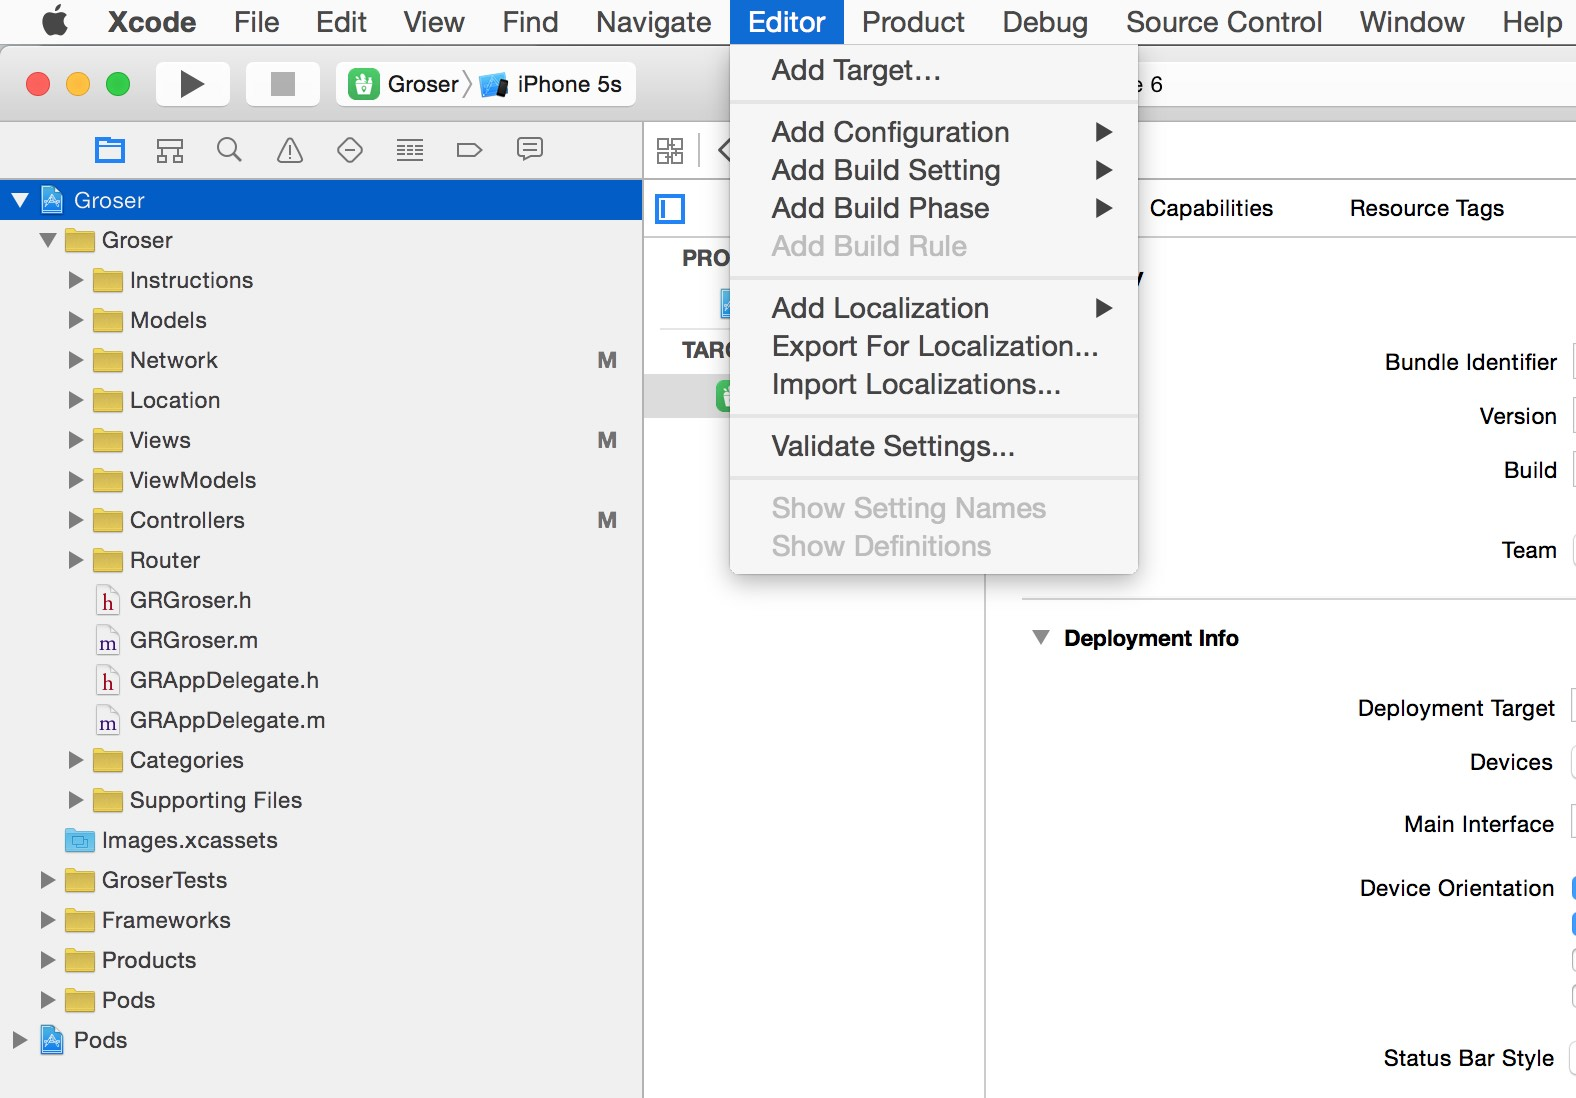 Automating App Store screenshots generation with Fastlane